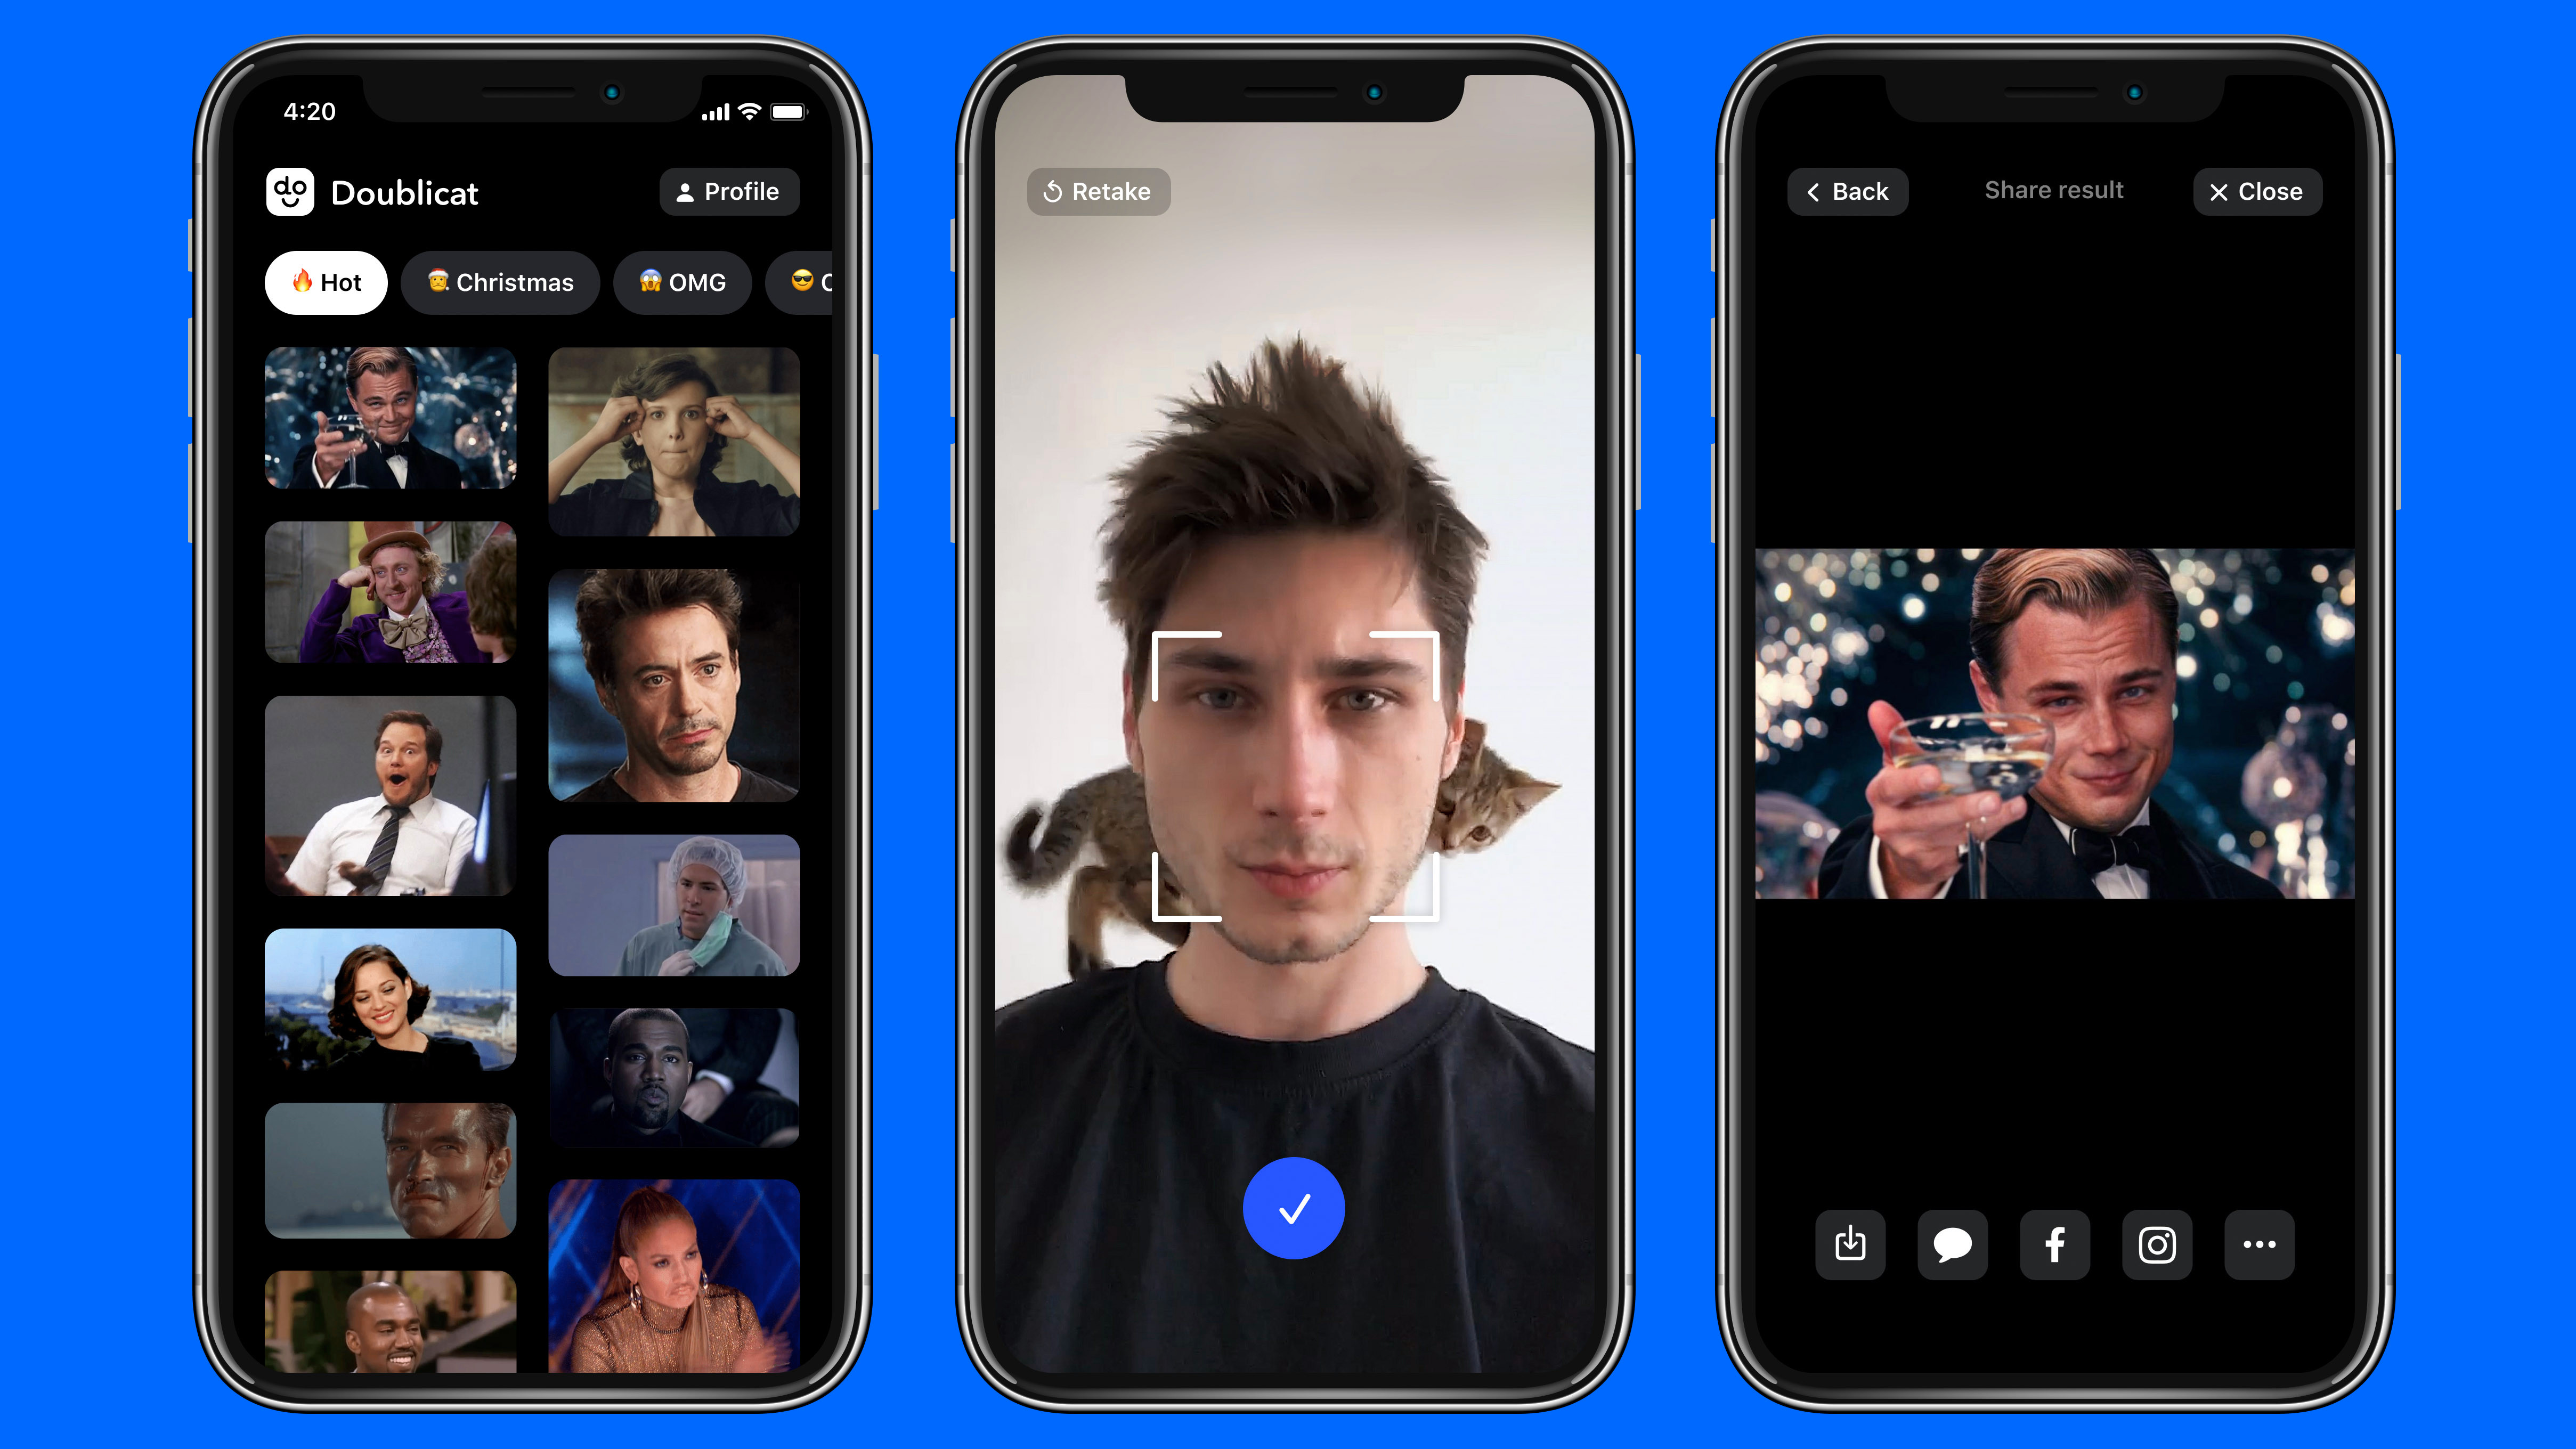 Simply snap a selfie and pick a GIF and the app will do the rest